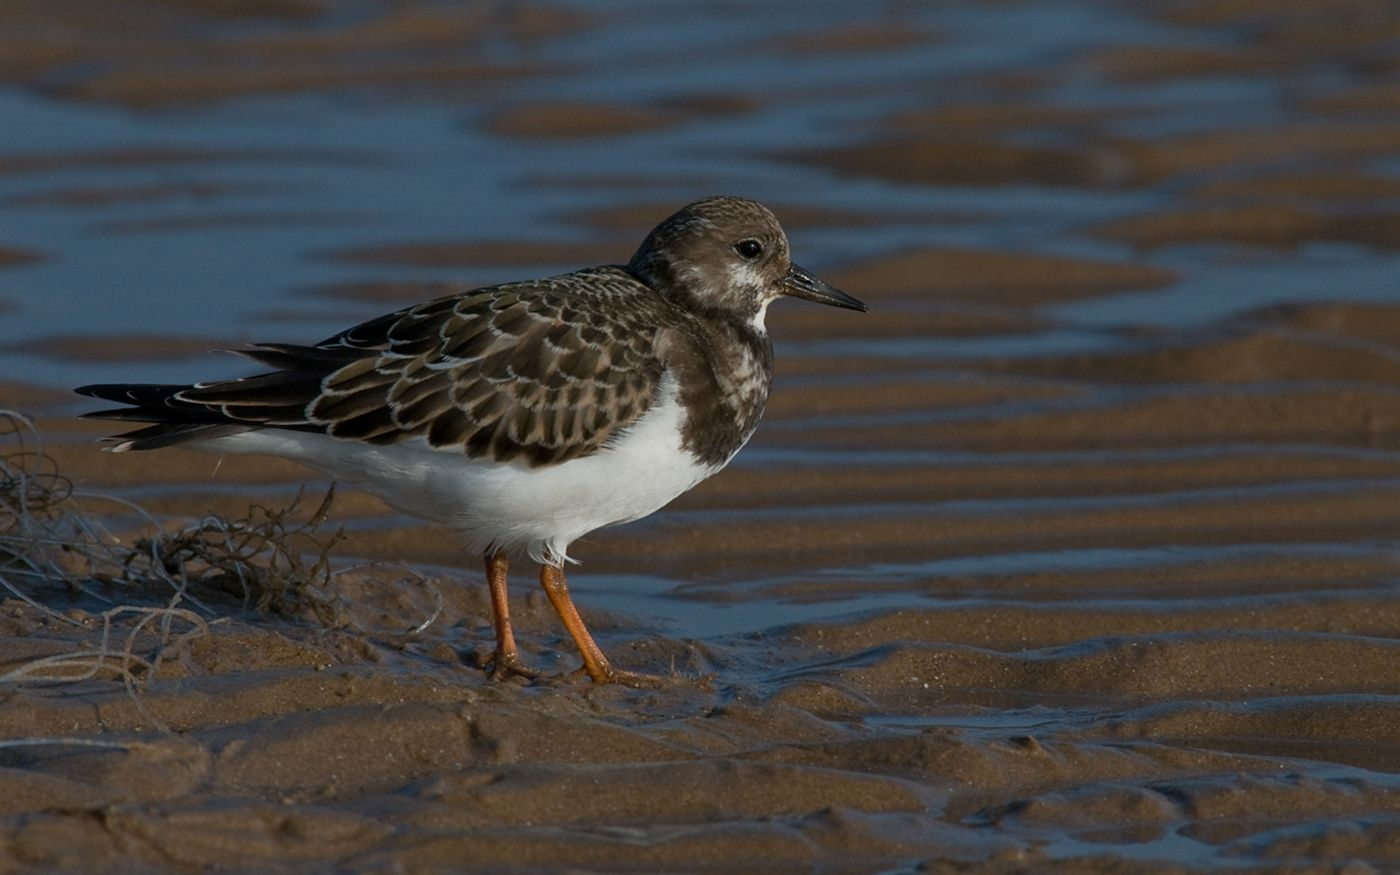 Arenaria interpres (Turnstone) with discarded fishing line by Steffan Nicholson